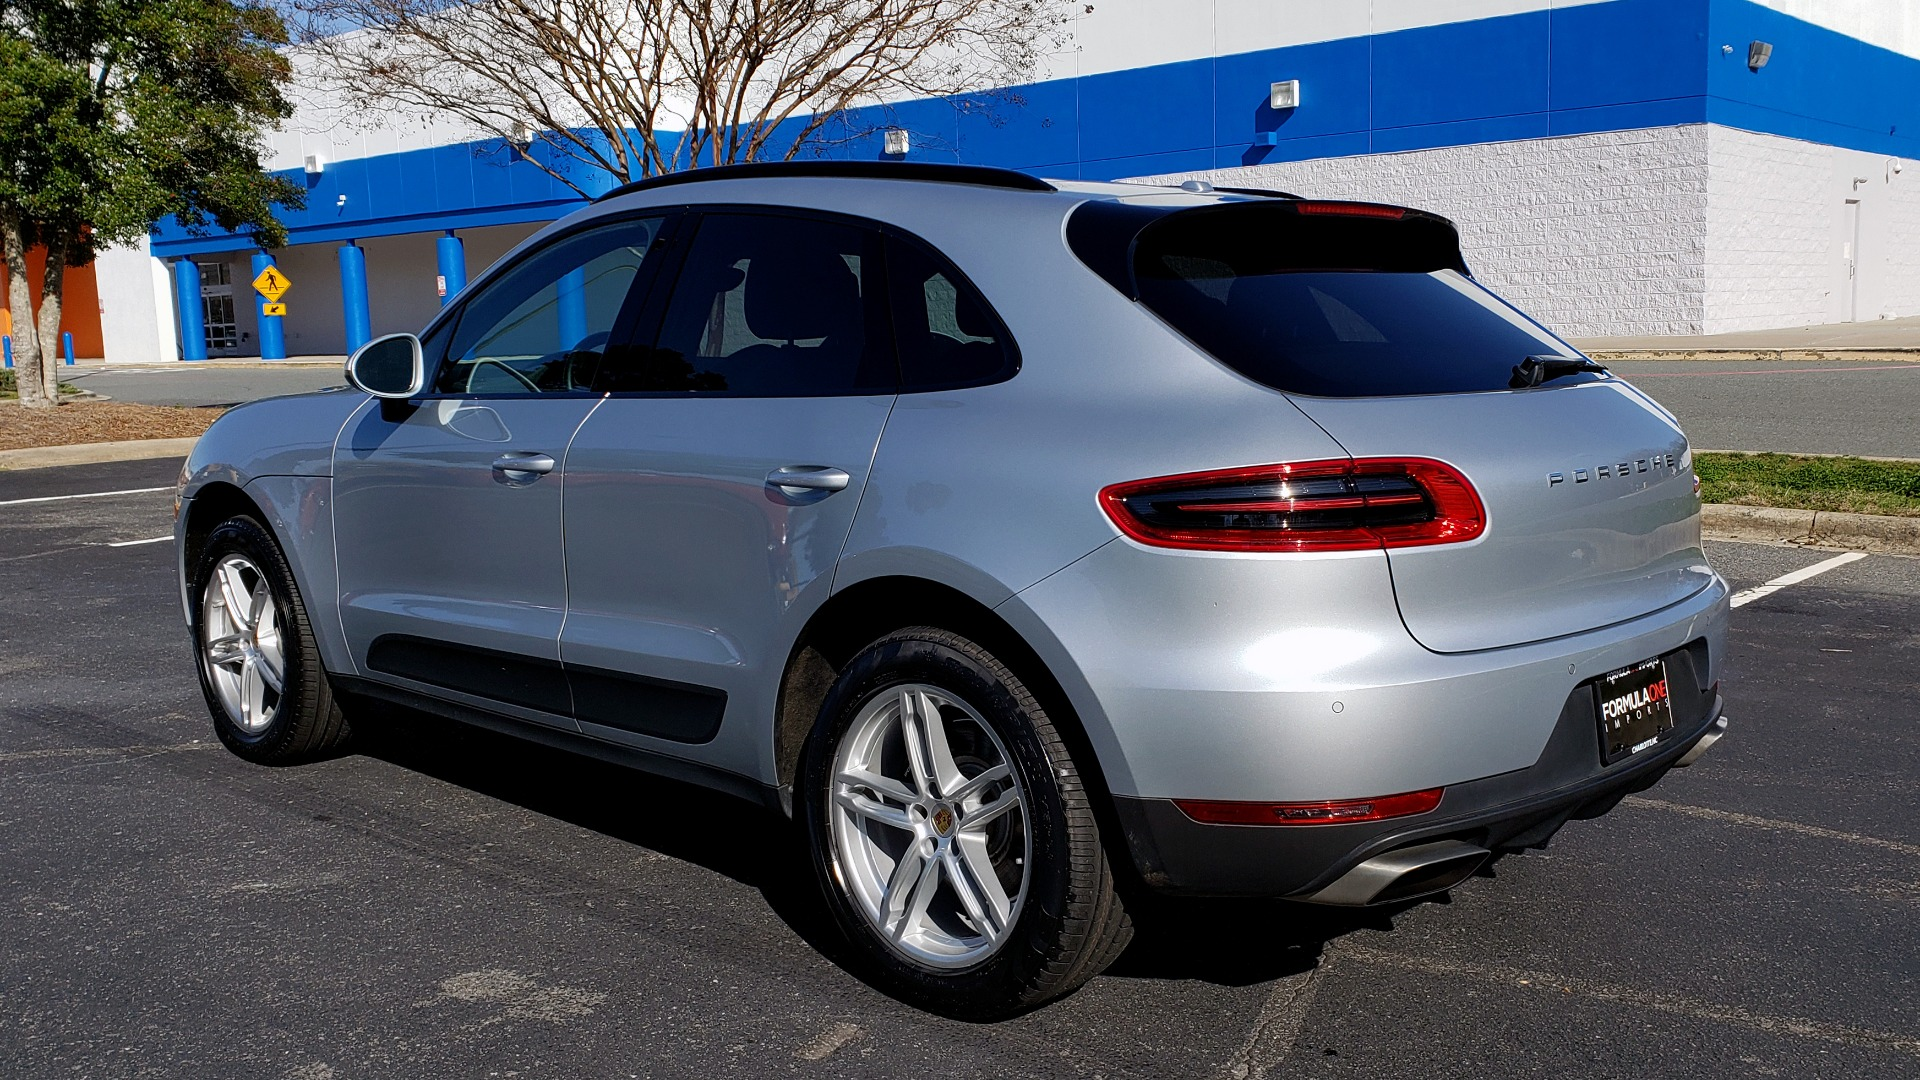 Used 2018 Porsche MACAN AWD / PDK / NAV / PANO-ROOF / BOSE / REARVIEW / LCA for sale Sold at Formula Imports in Charlotte NC 28227 3